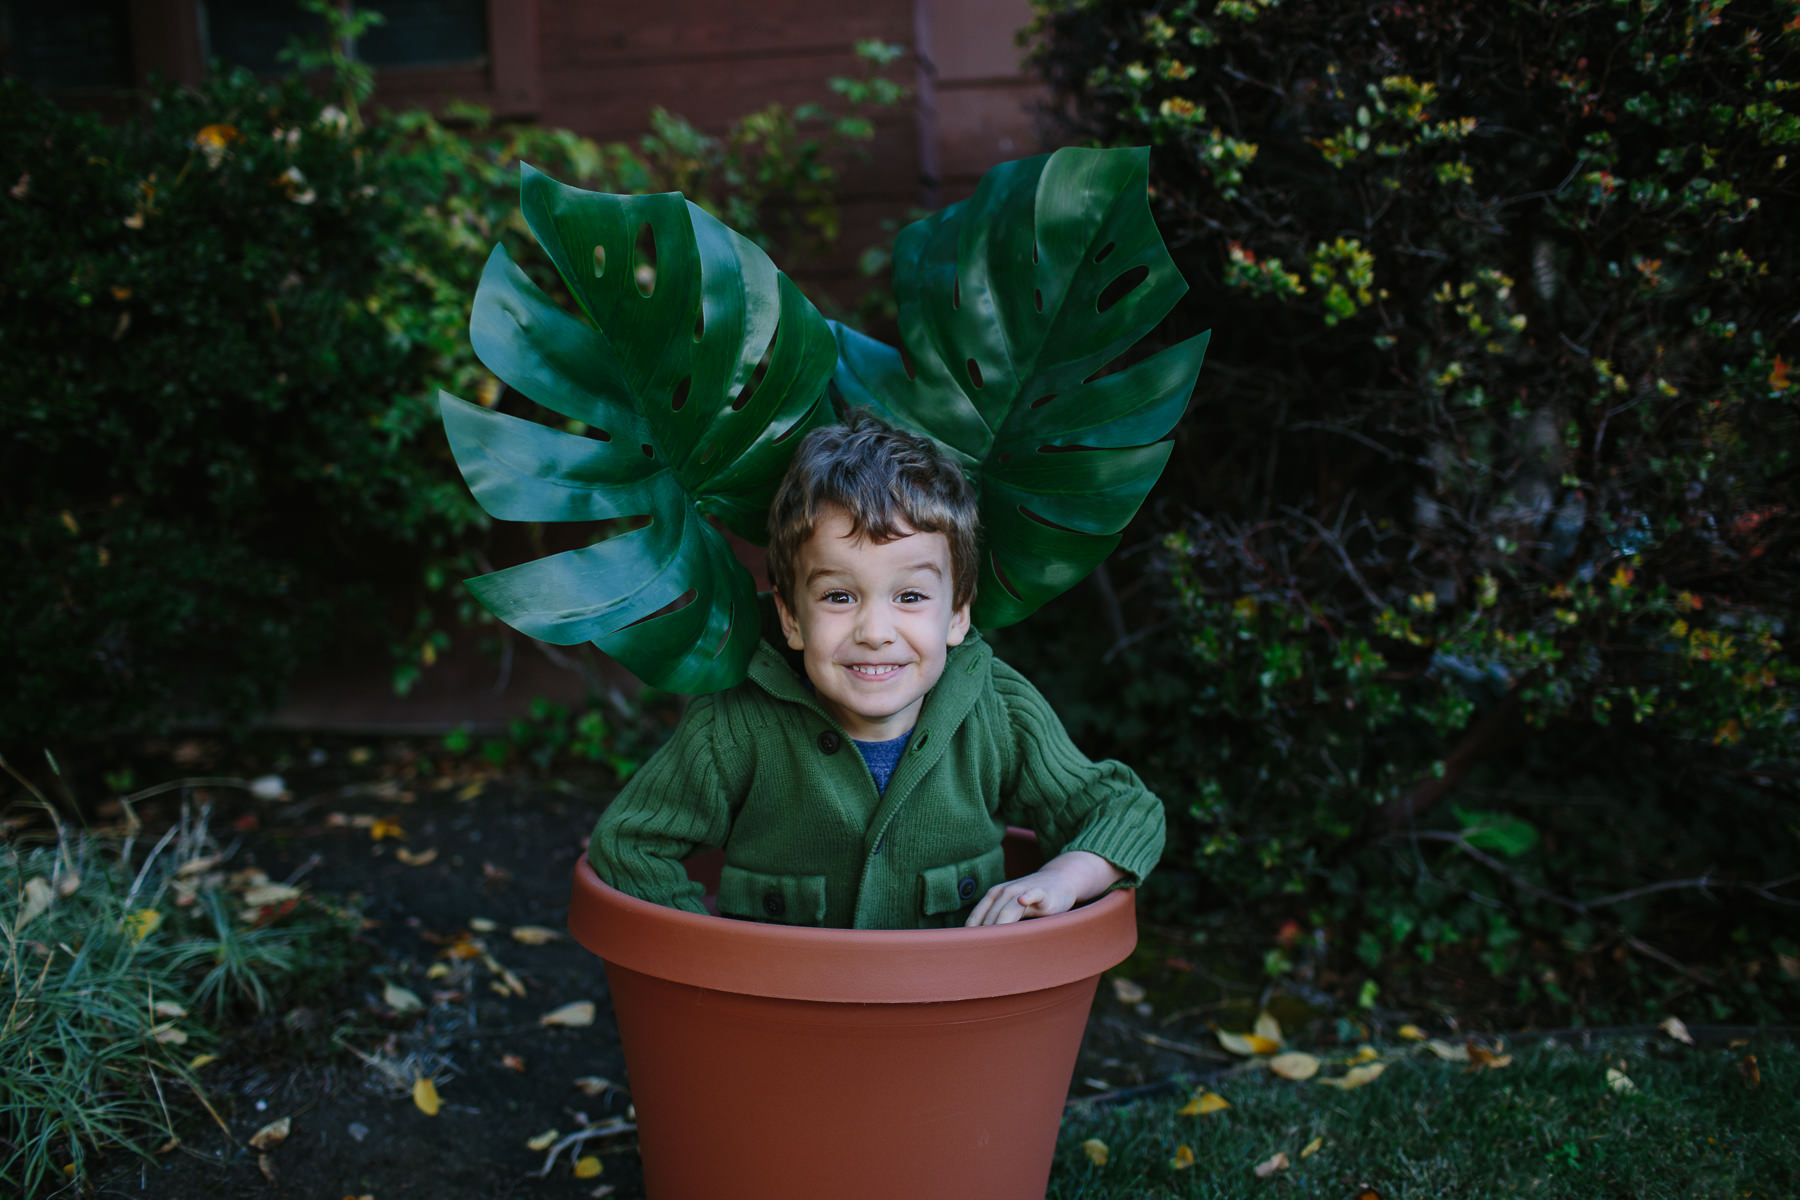 the-curiosity-project-blog-halloween-plant-lady-costumes (4 of 13).jpg